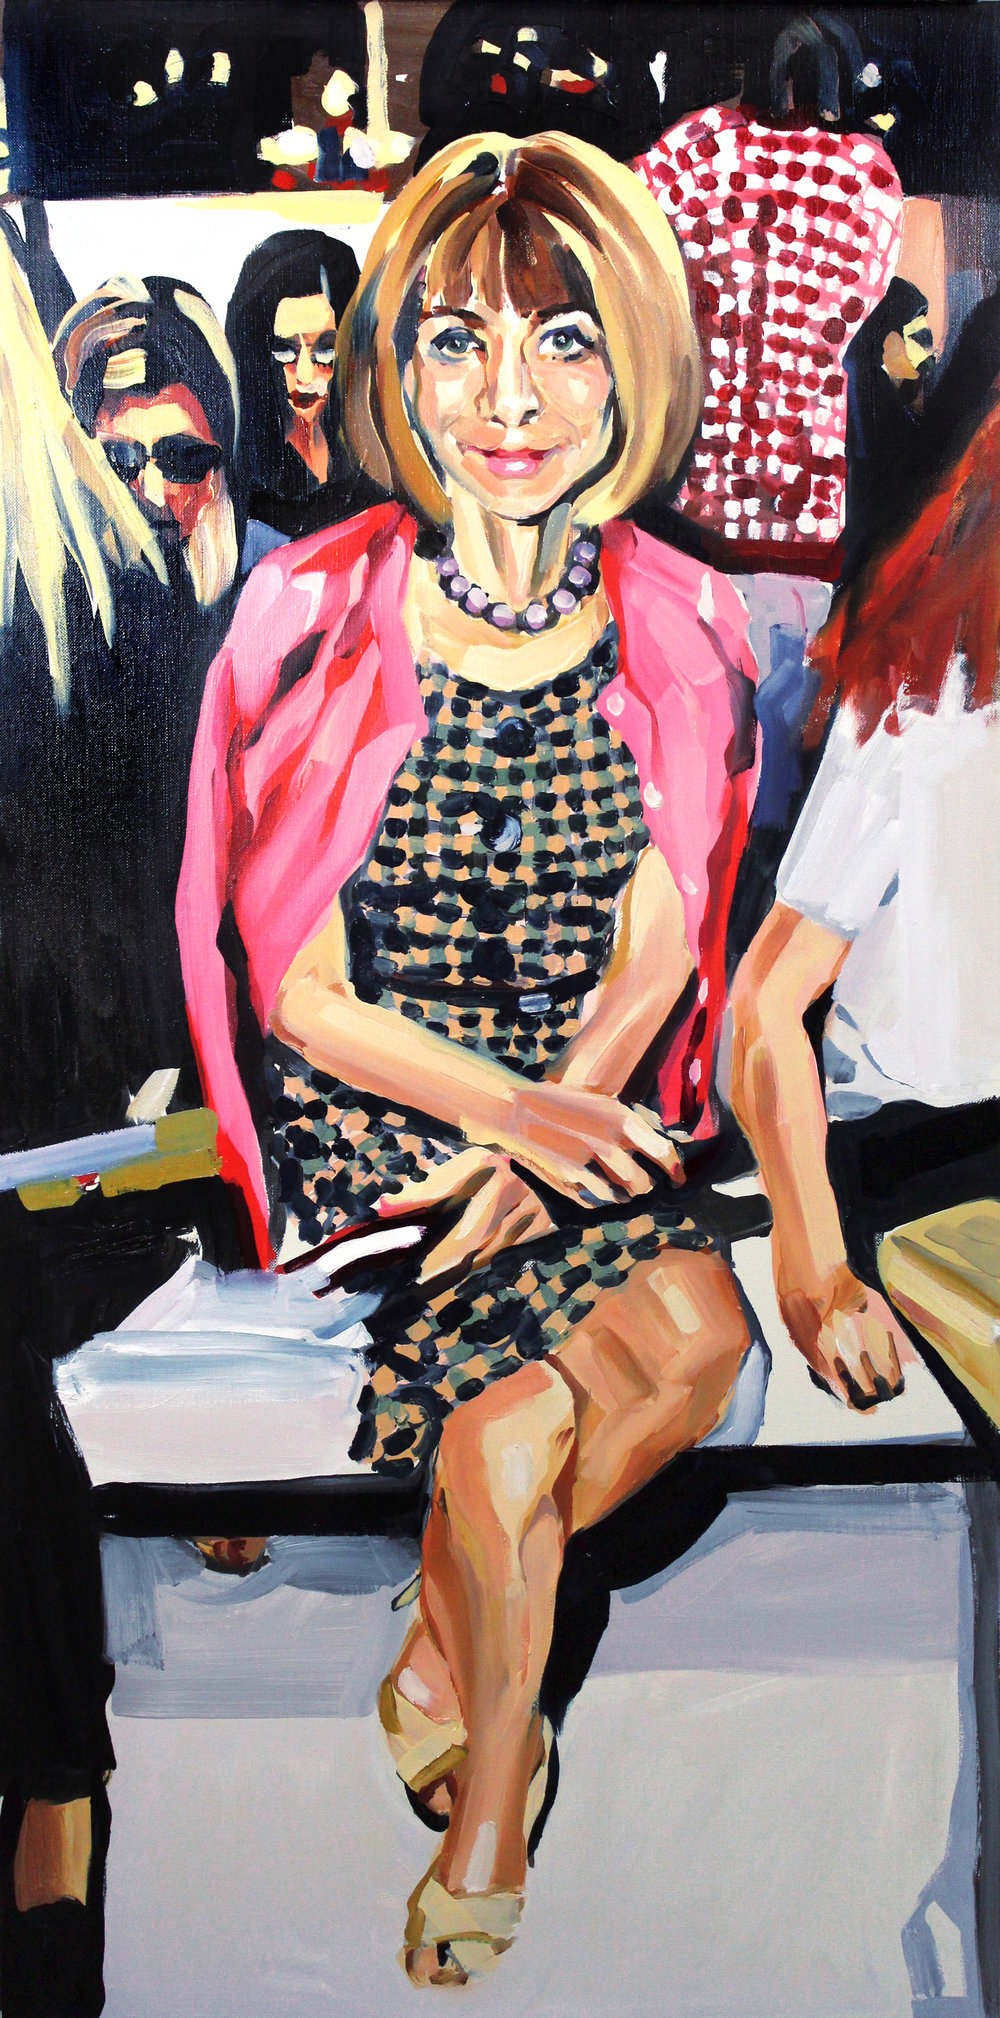 Laura Collins Anna Wintour Double Crossing Her Legs no. 4 oil on linen 24x48 2018.JPG